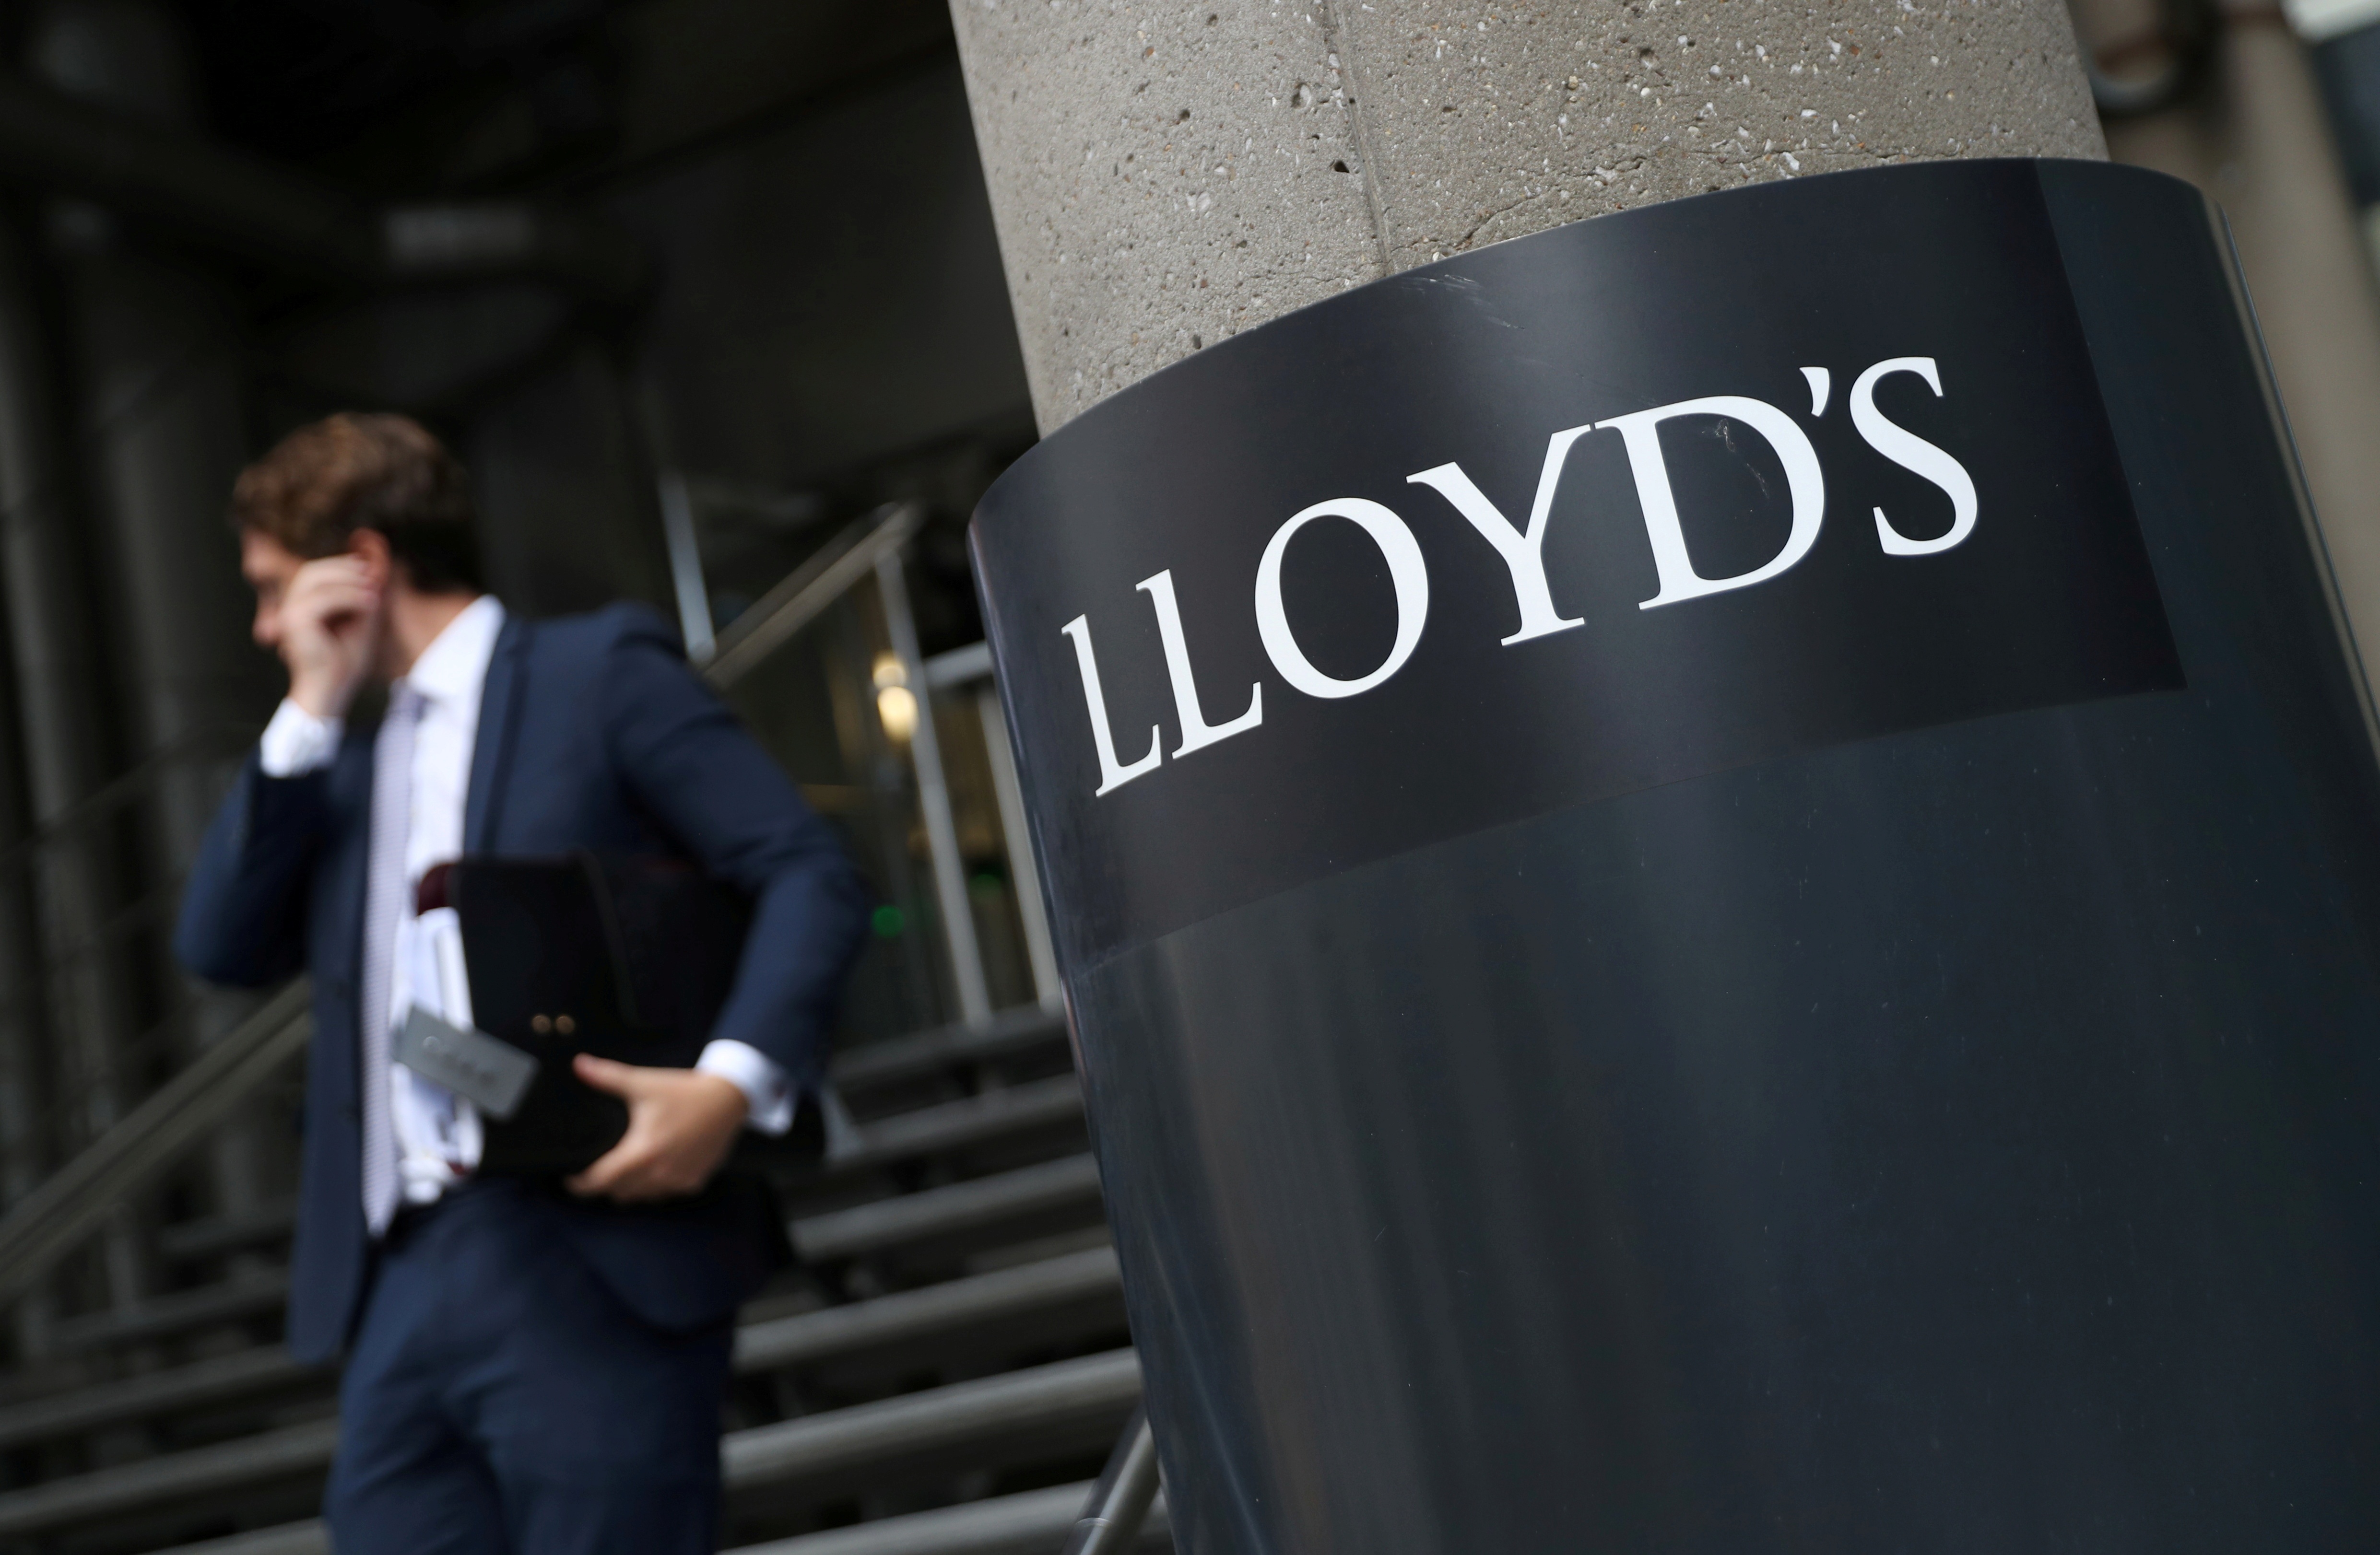 A man walks out of Lloyd's of London's headquarters in the City of London, Britain, July 31, 2018. REUTERS/Simon Dawson/File Photo